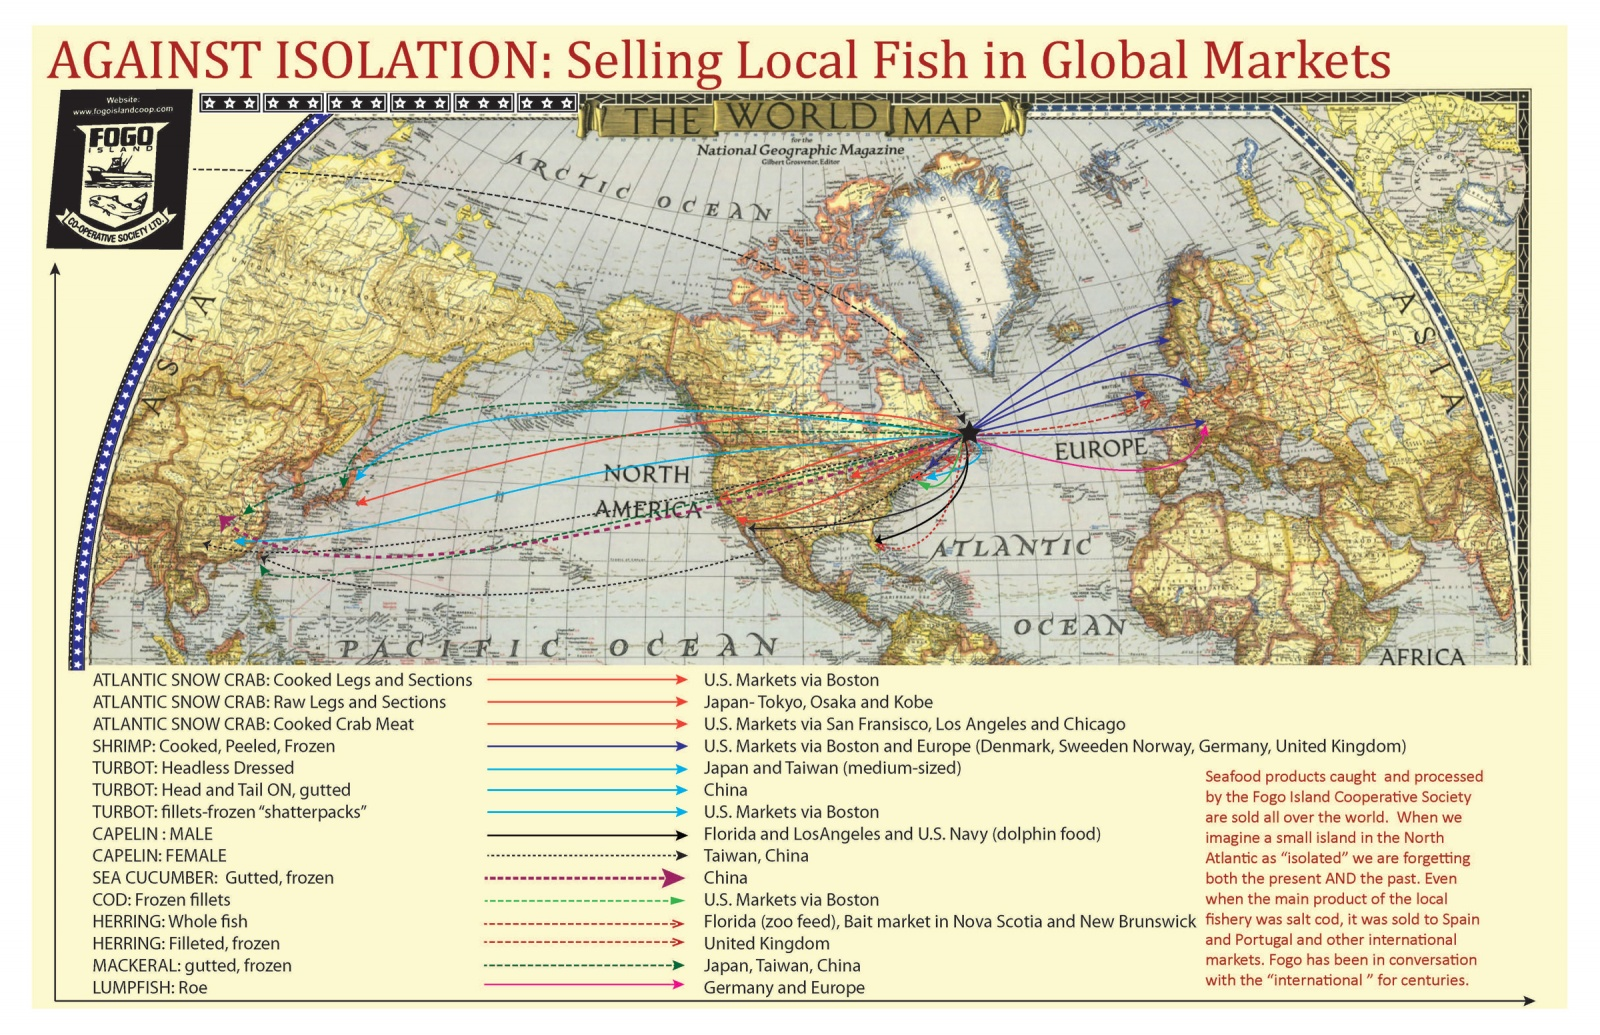 Against Isolation: Selling Local Fish to Global Markets